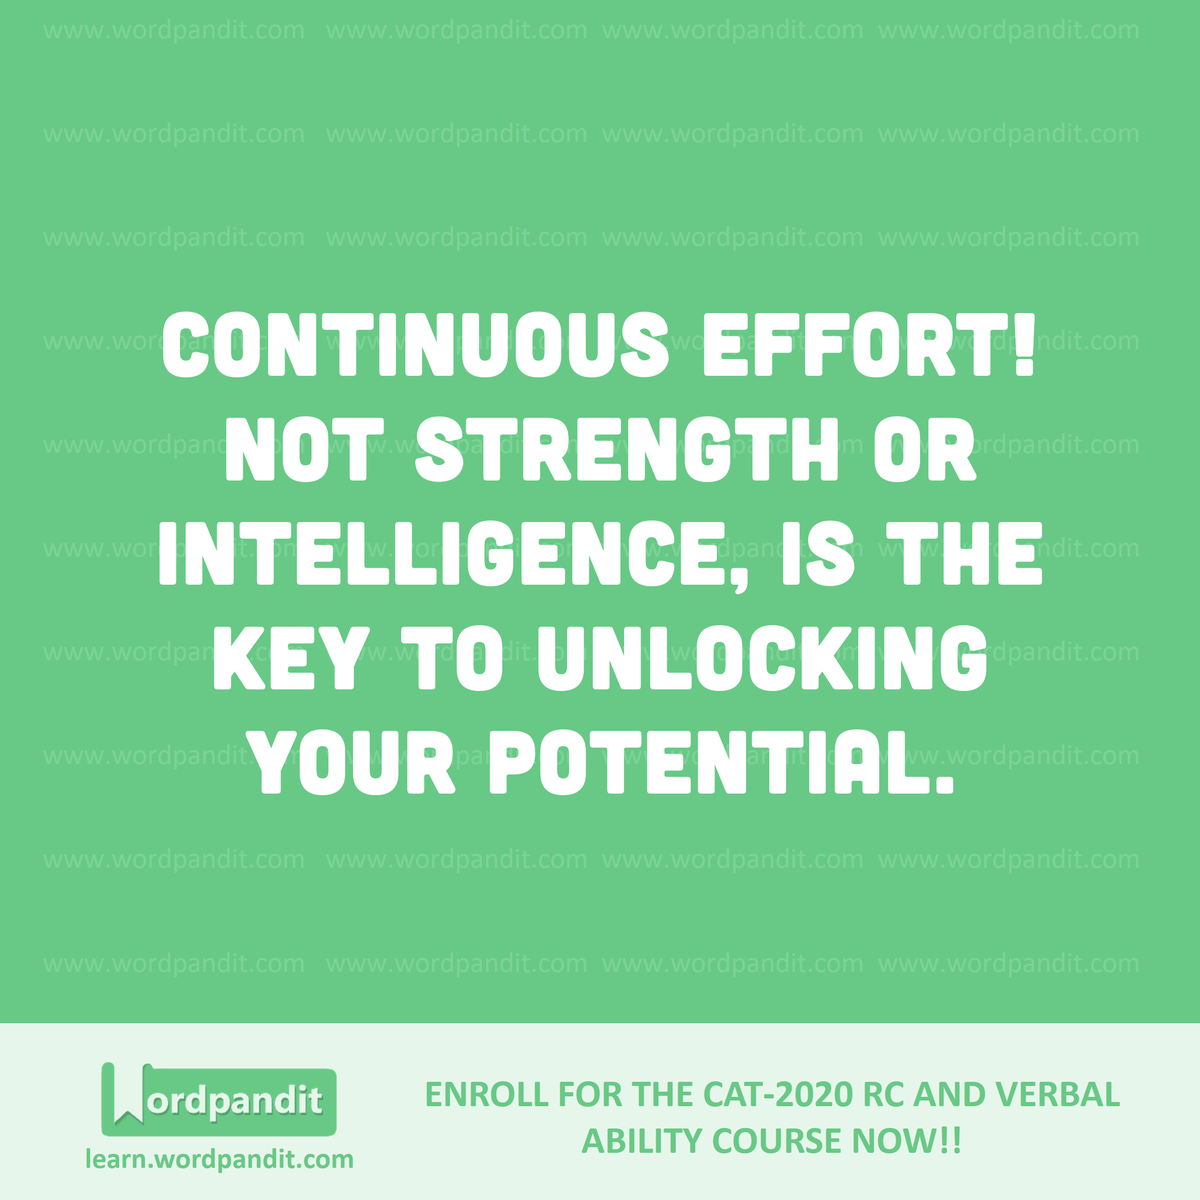 Continuous effort! not strength or intelligence, is the key to unlocking your potential.  #motivation #wordpandit #quotesdaily #examprep #bank #ssc #ipmat #mba #pgdbm #iims #varc #rc #cat2020 #gmat #gre #mbaprep #motivationalquote #nevergiveuppic.twitter.com/AdhmbH8N37